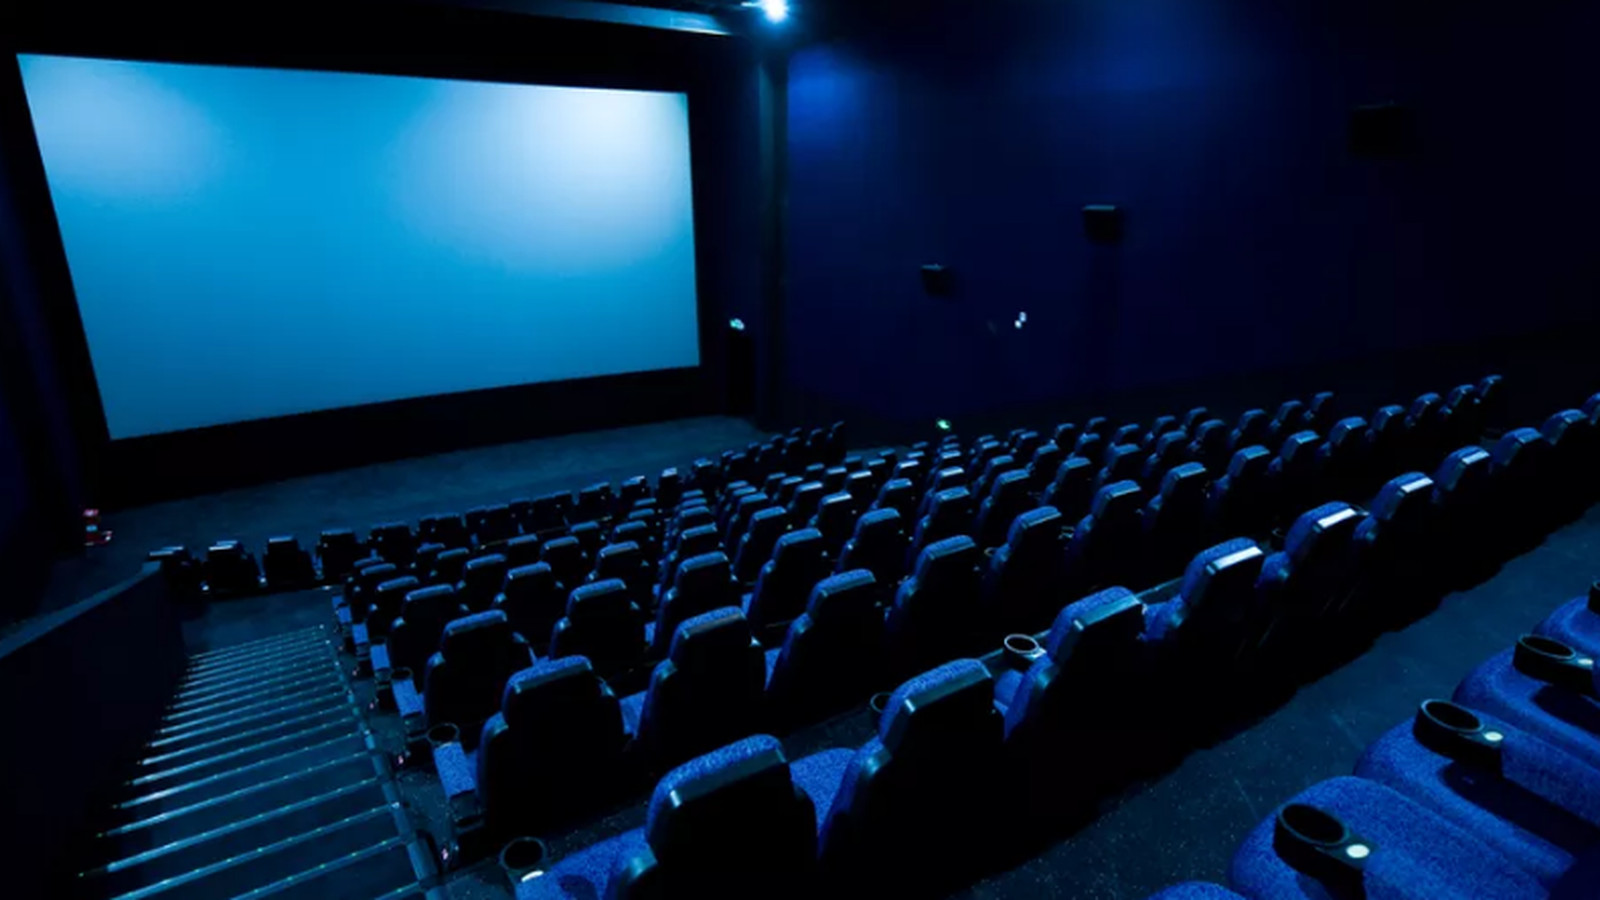 theater movie theaters mode screen vox upcoming studios am texting shot